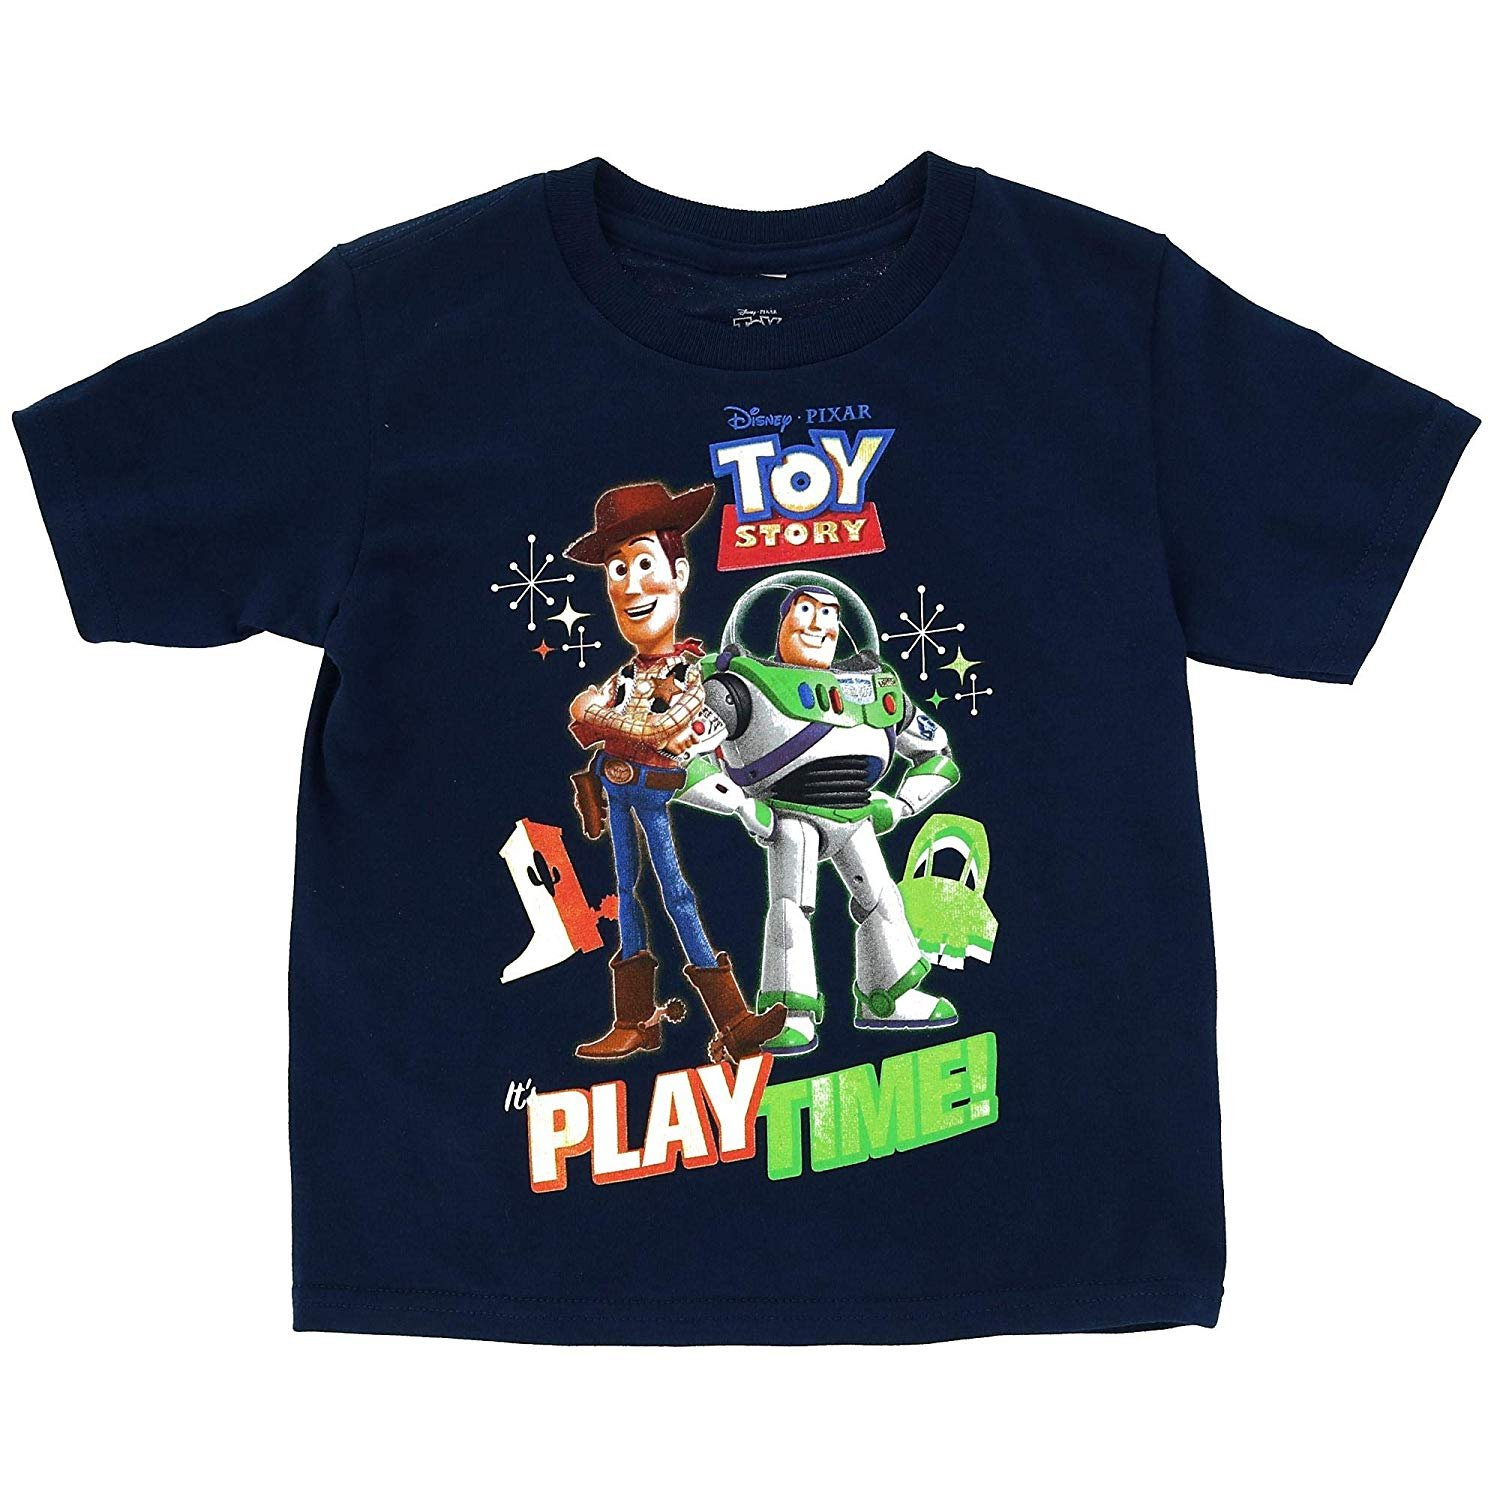 Toy Story 4 Kids Boys Girls Cotton T-Shirt Tops Clothes Buzz Lightyear Woody